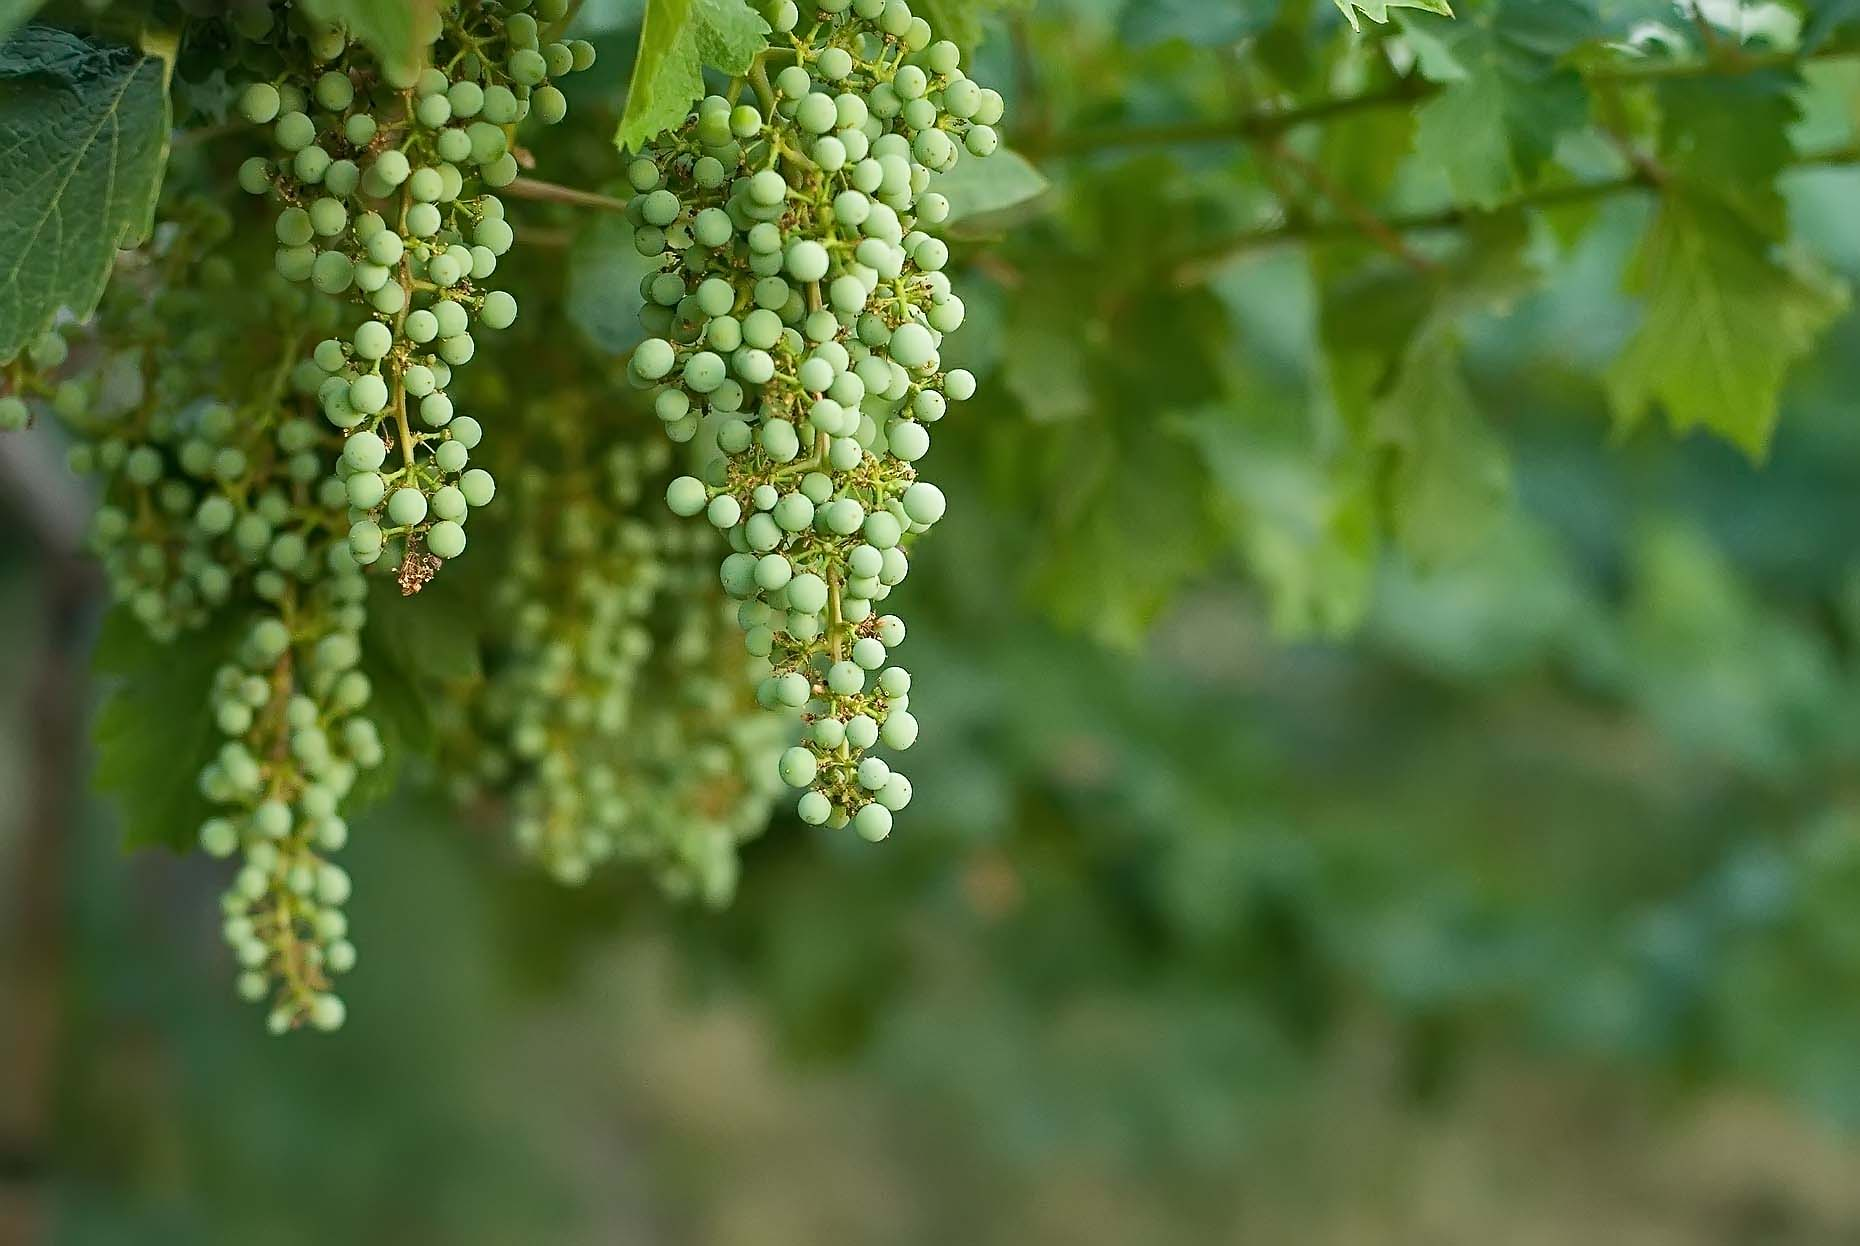 Young Cabernet Sauvignon grapes